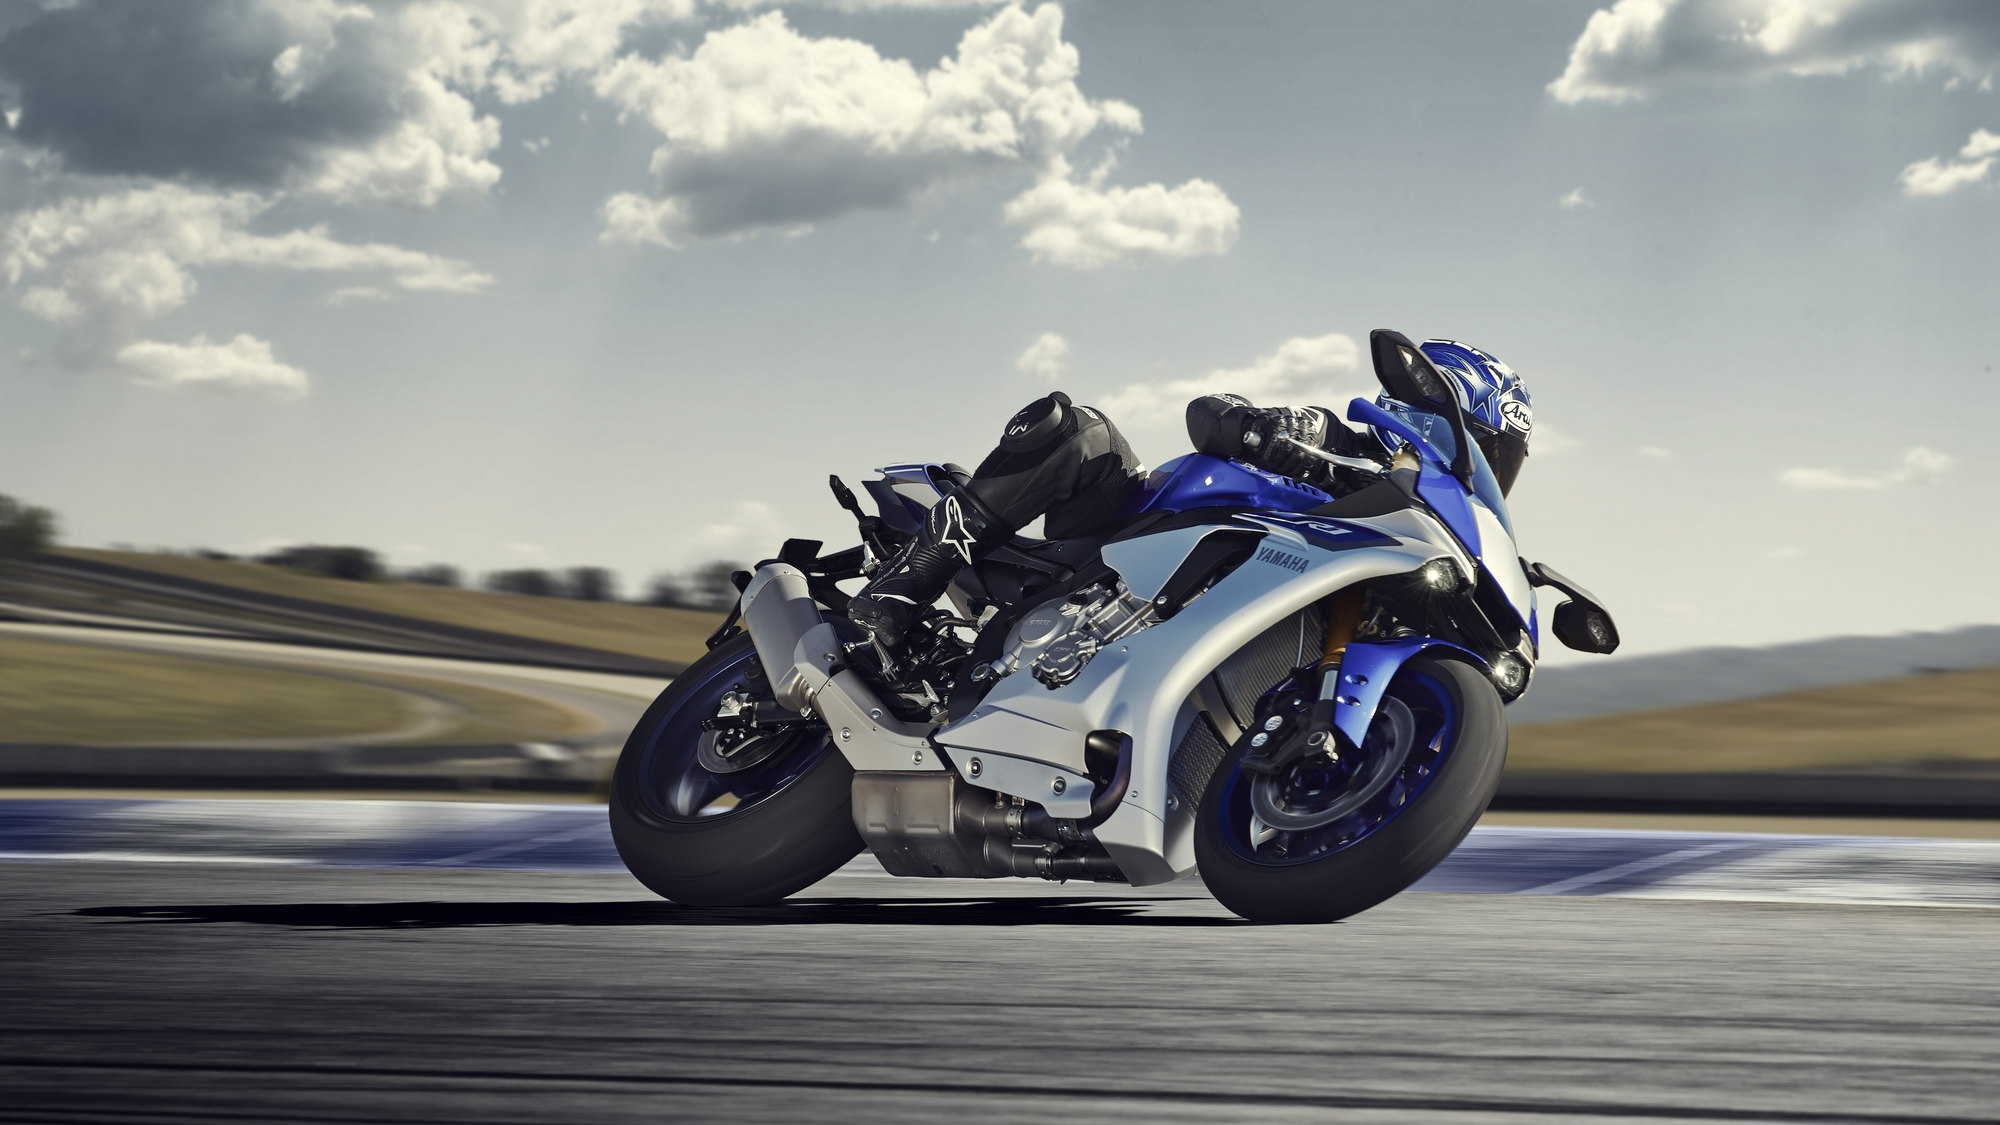 Bmw Sport Bike >> 2015 Yamaha YZF-R1 Studio and Action Shots Show More ...